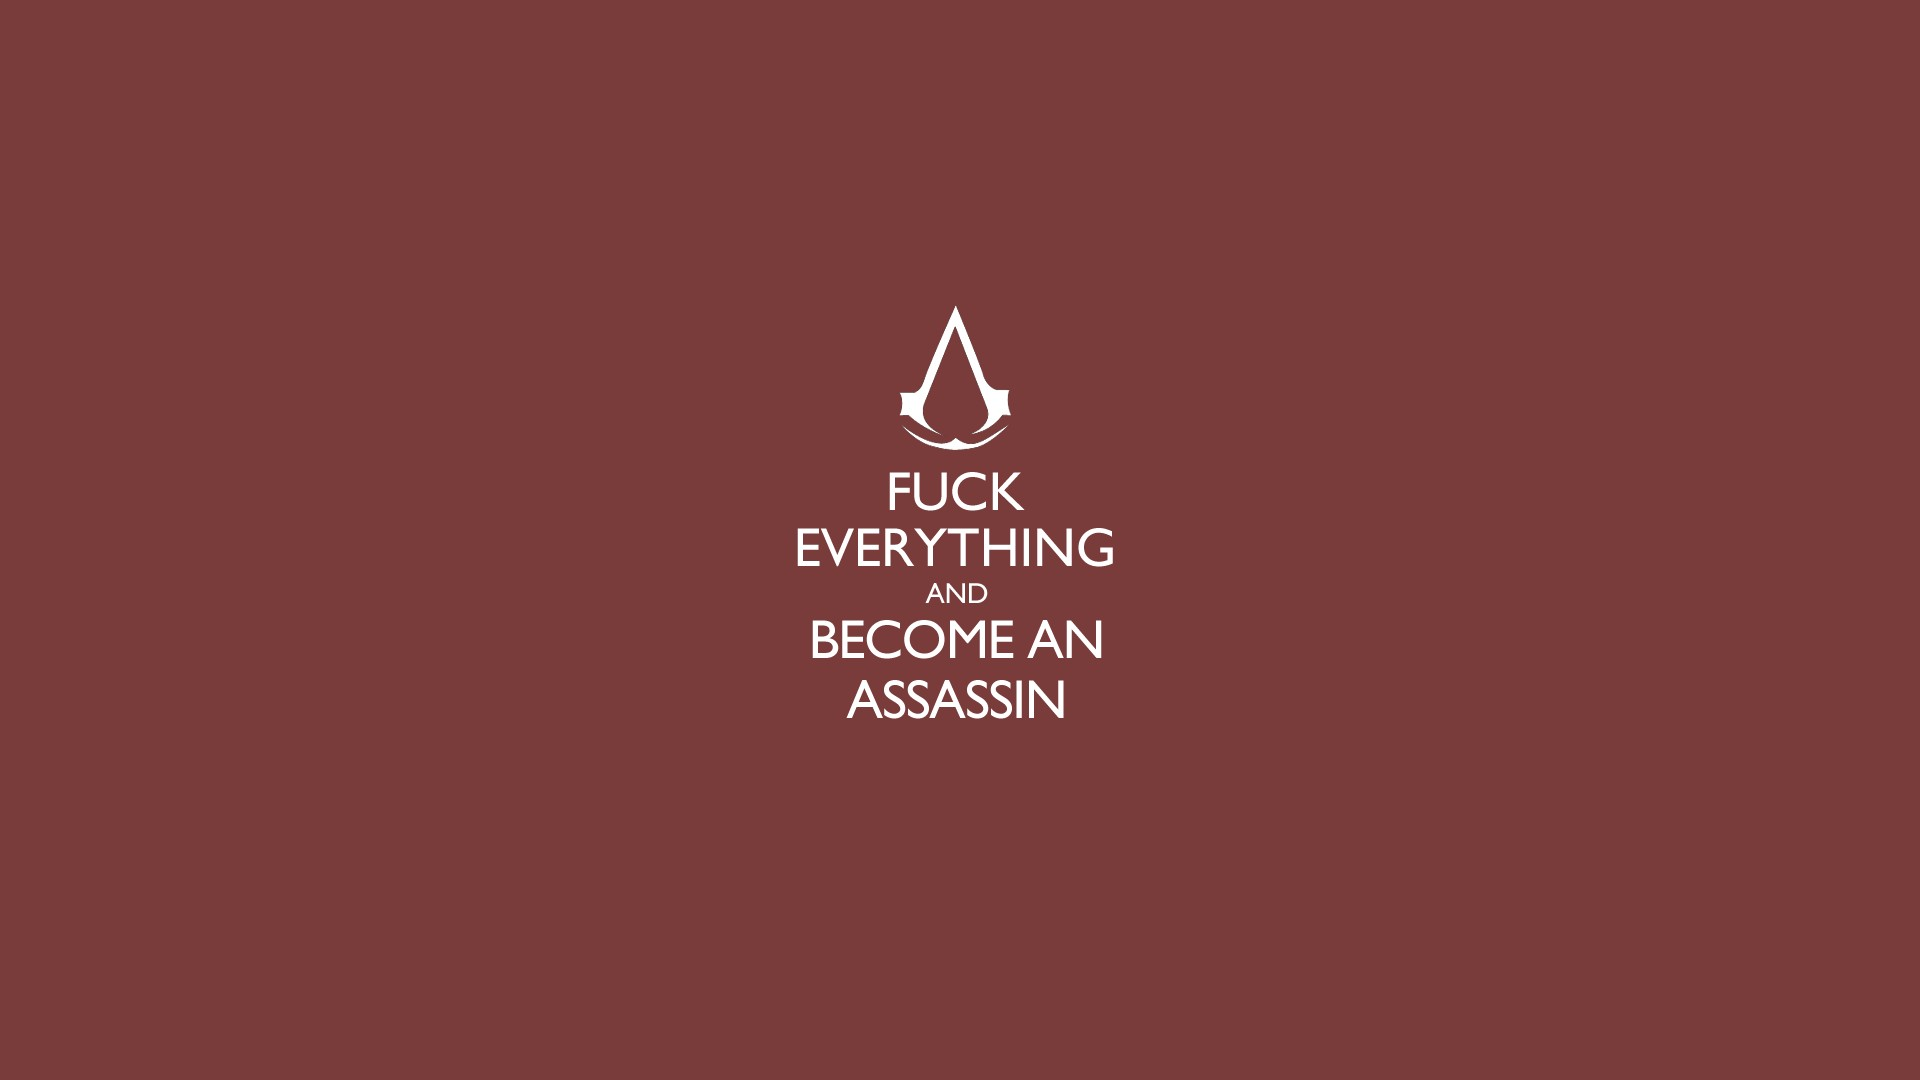 assassins creed text quotes funny logos wallpaper | allwallpaper.in